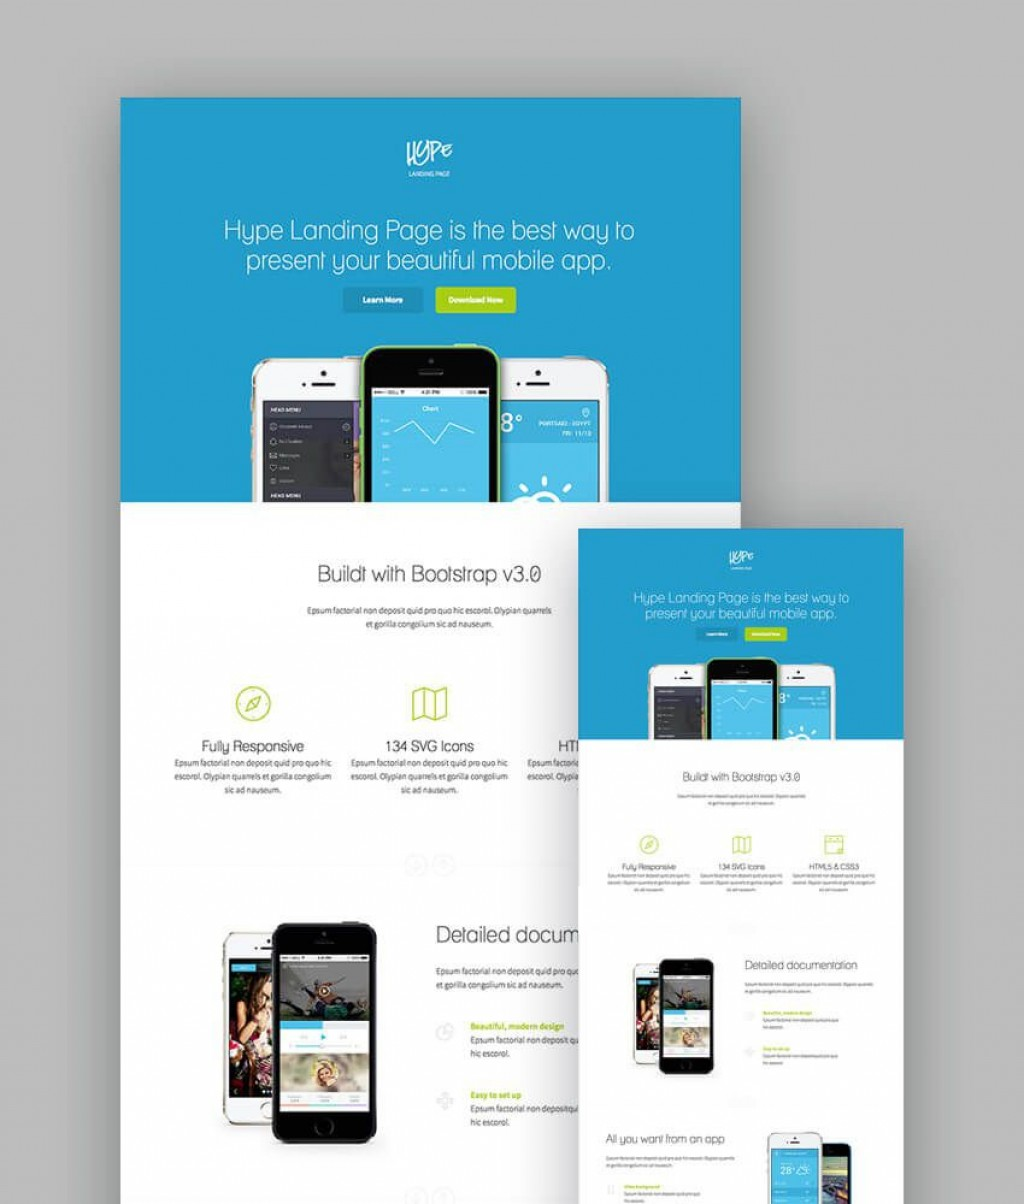 003 Stunning Responsive Landing Page Template High Definition  Templates Html5 Free Download Wordpres HtmlLarge